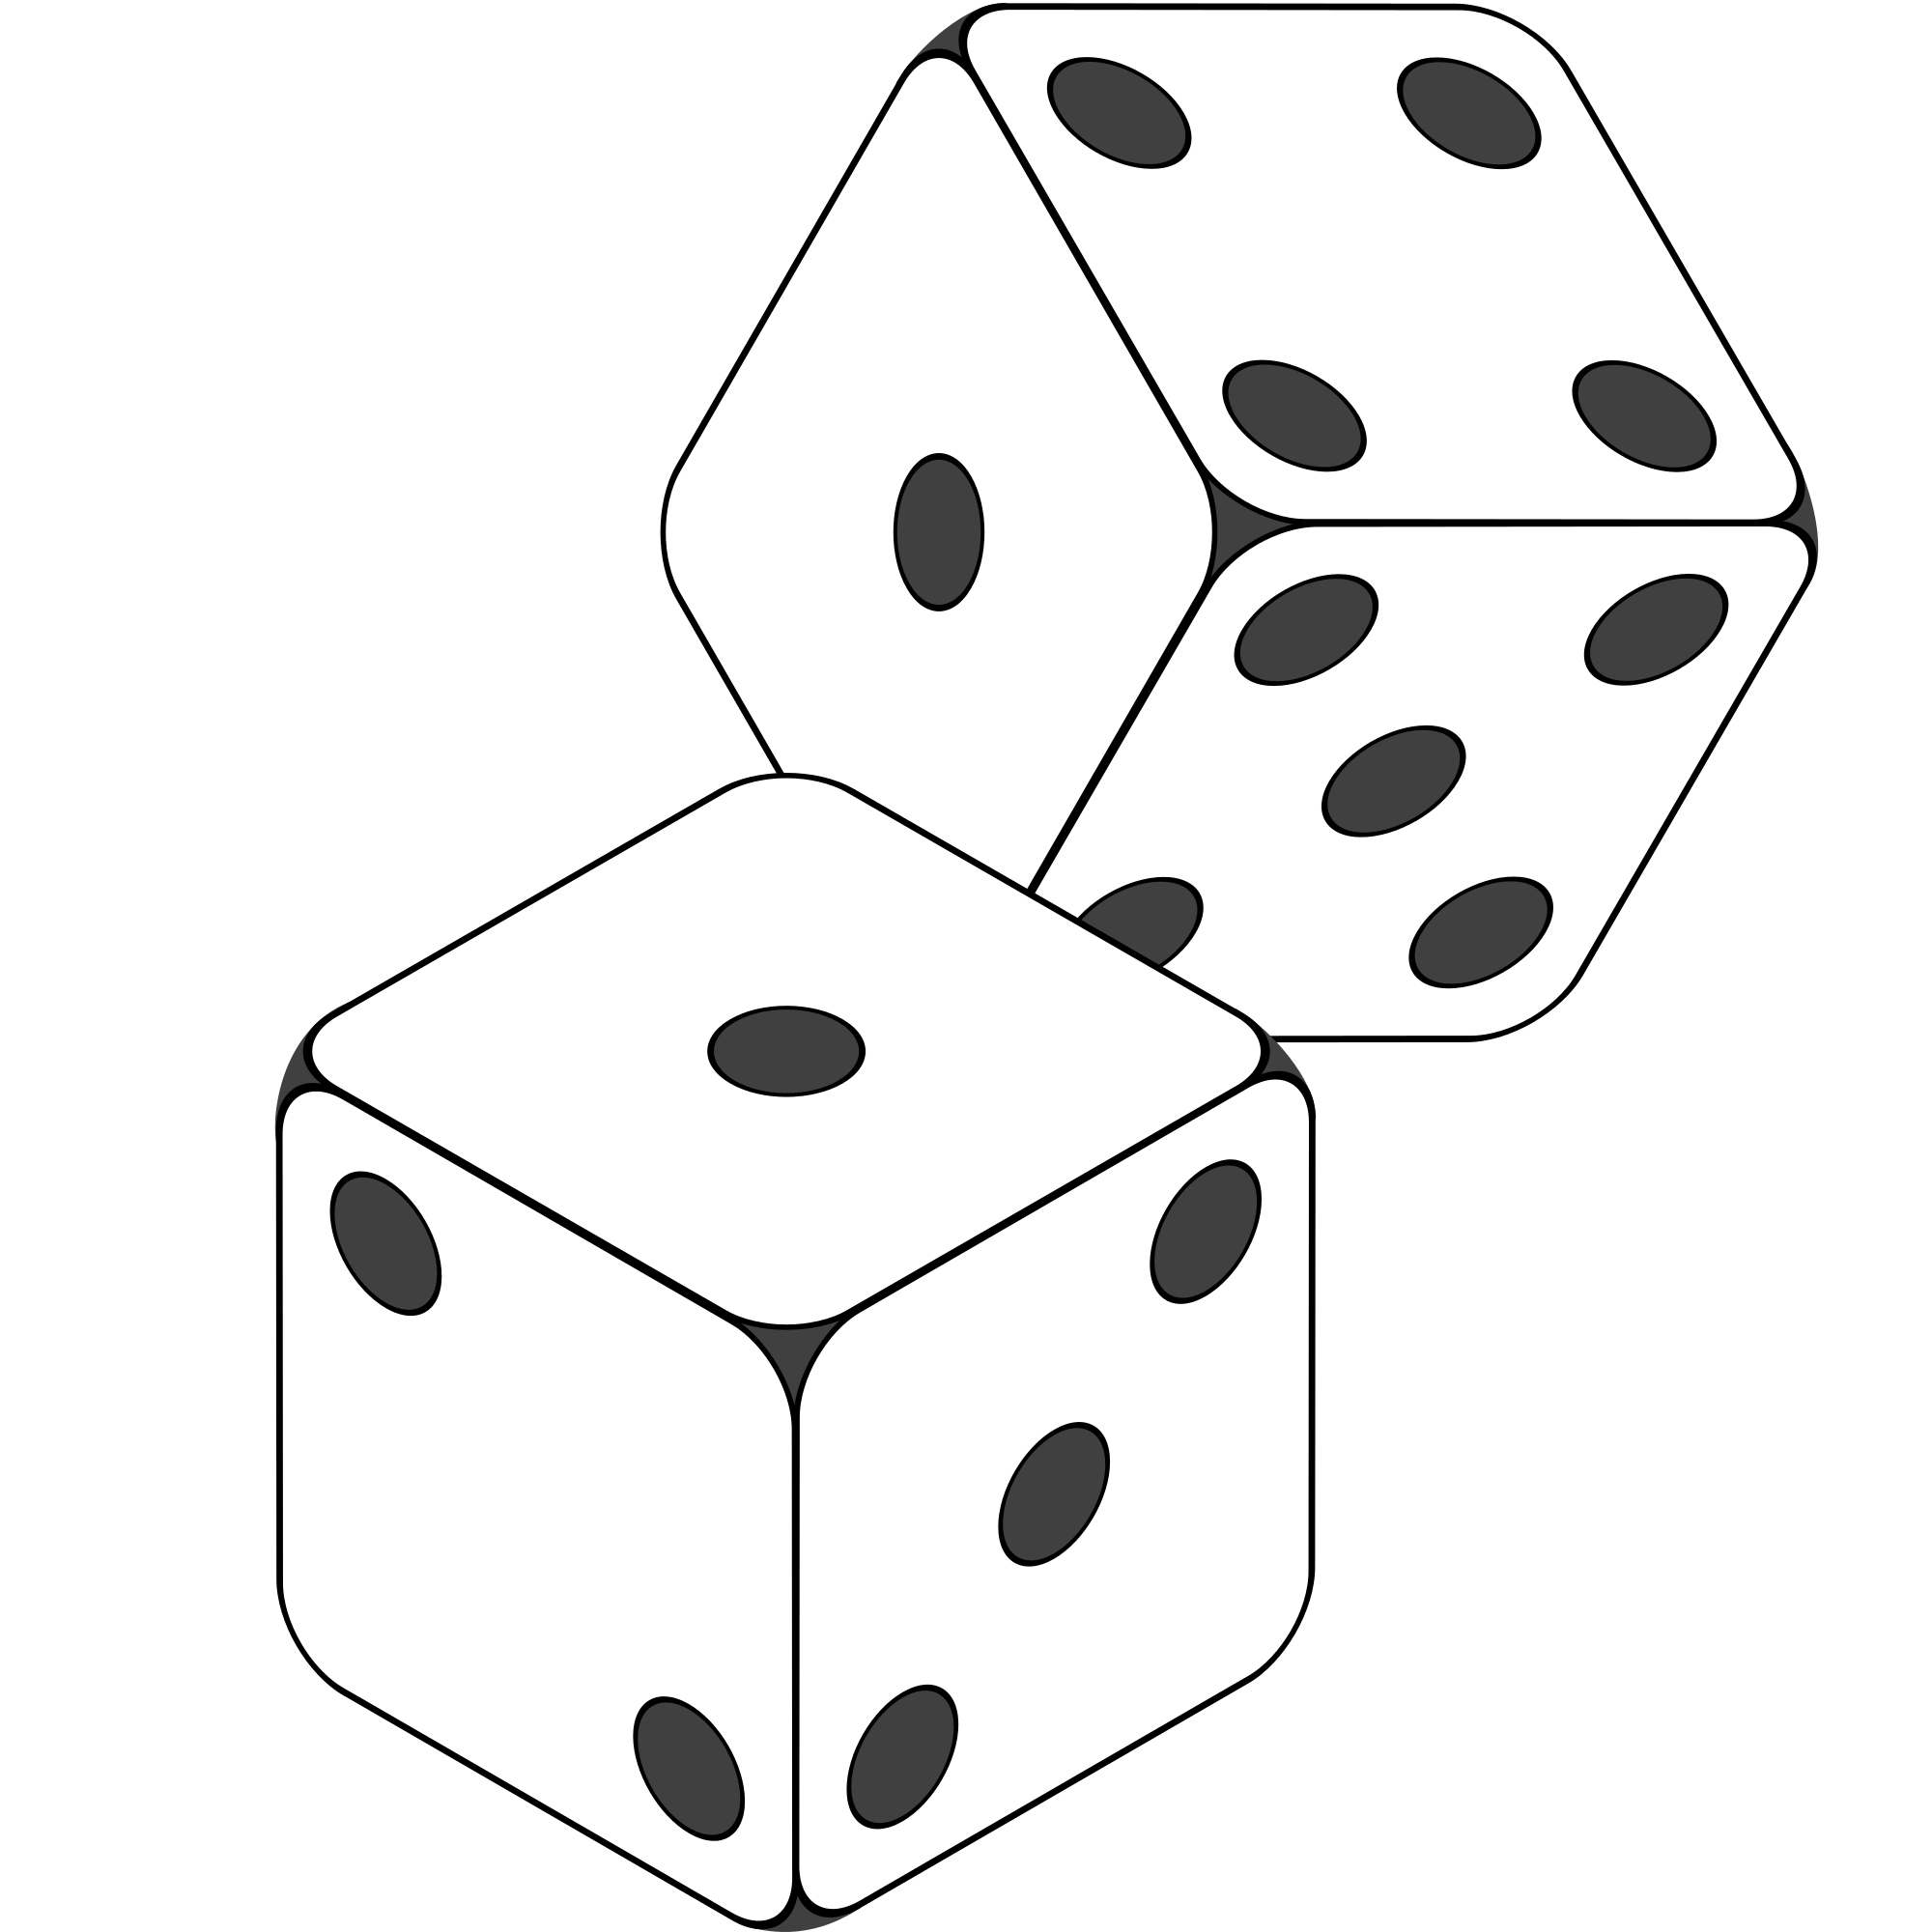 Number 3 Dice Clipart Black And White